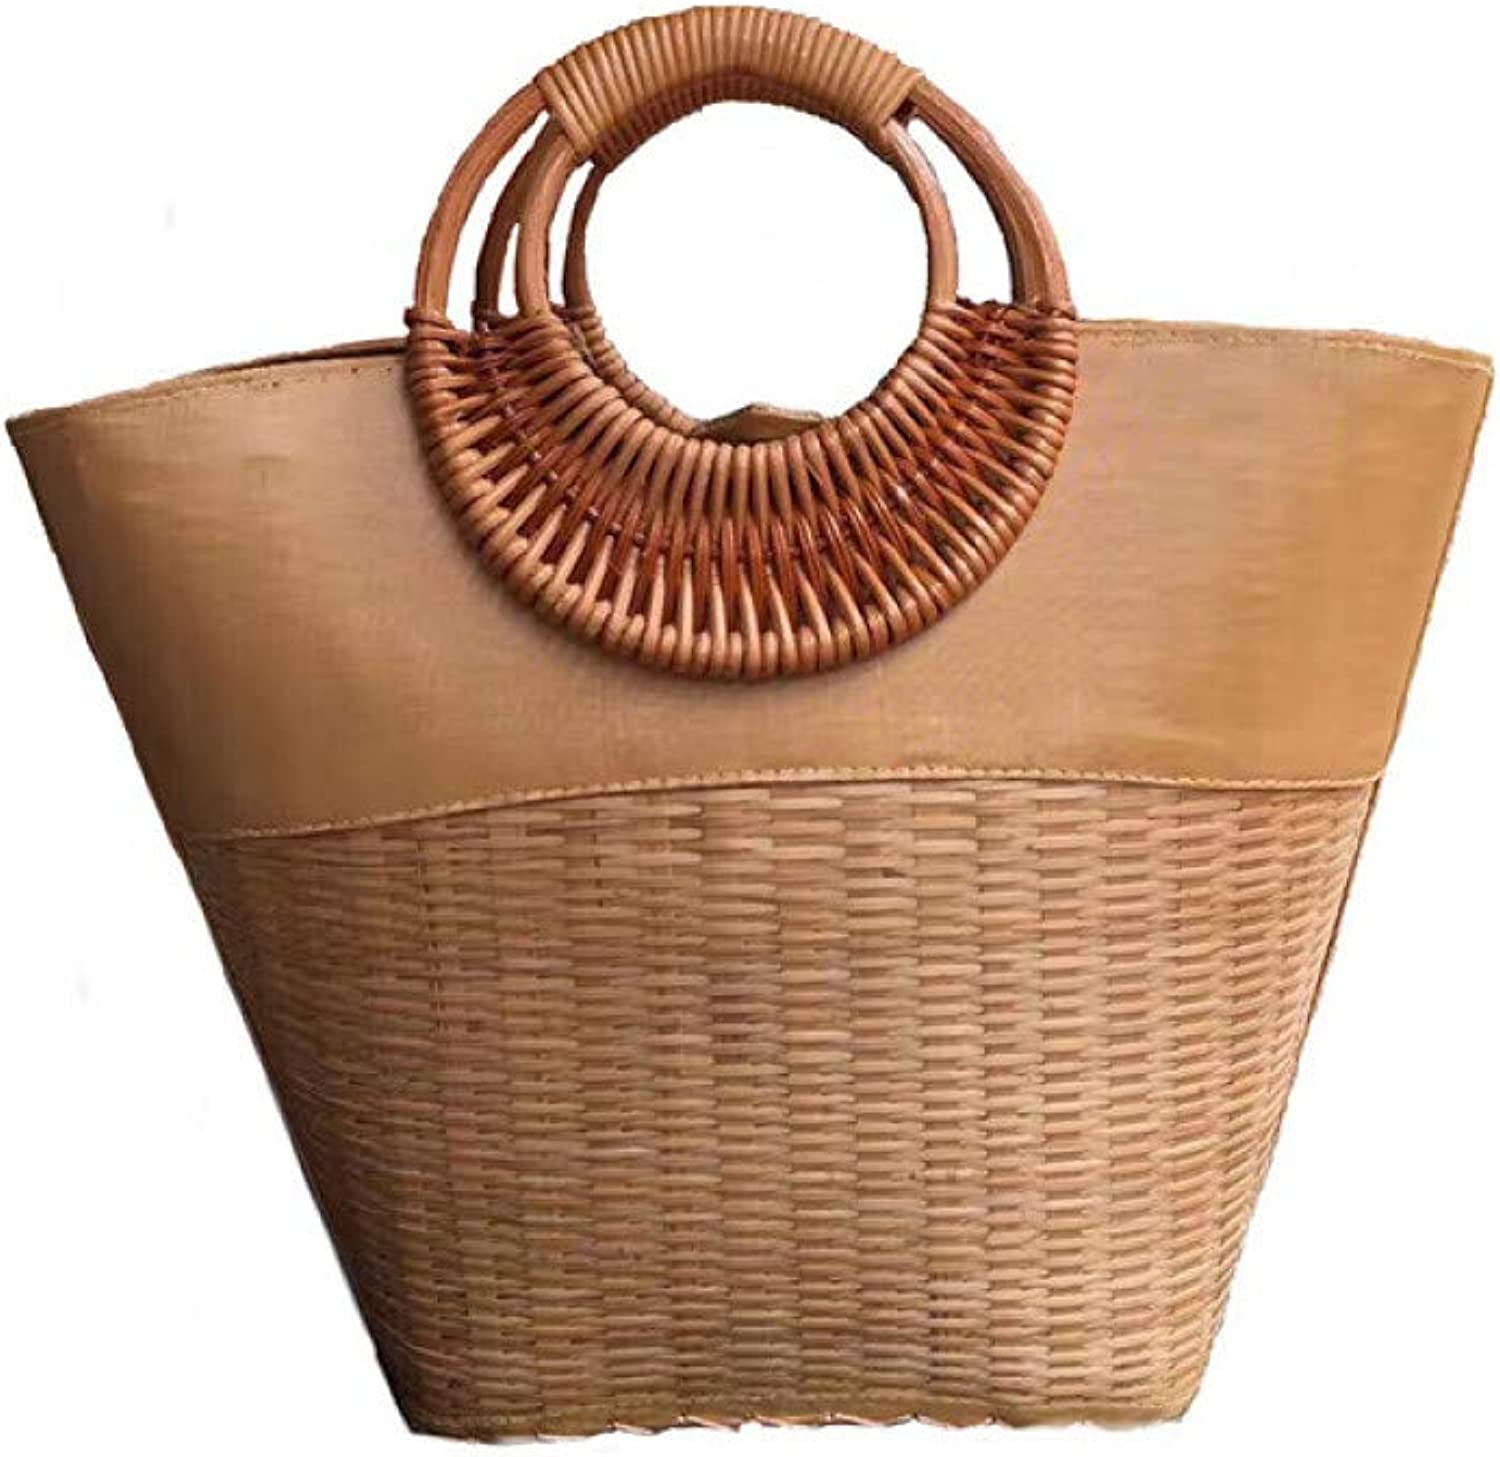 Circle Wooden Handle Knitted Handbags Summer Fashion Straw Bags for Women Drawstring Beach Totes